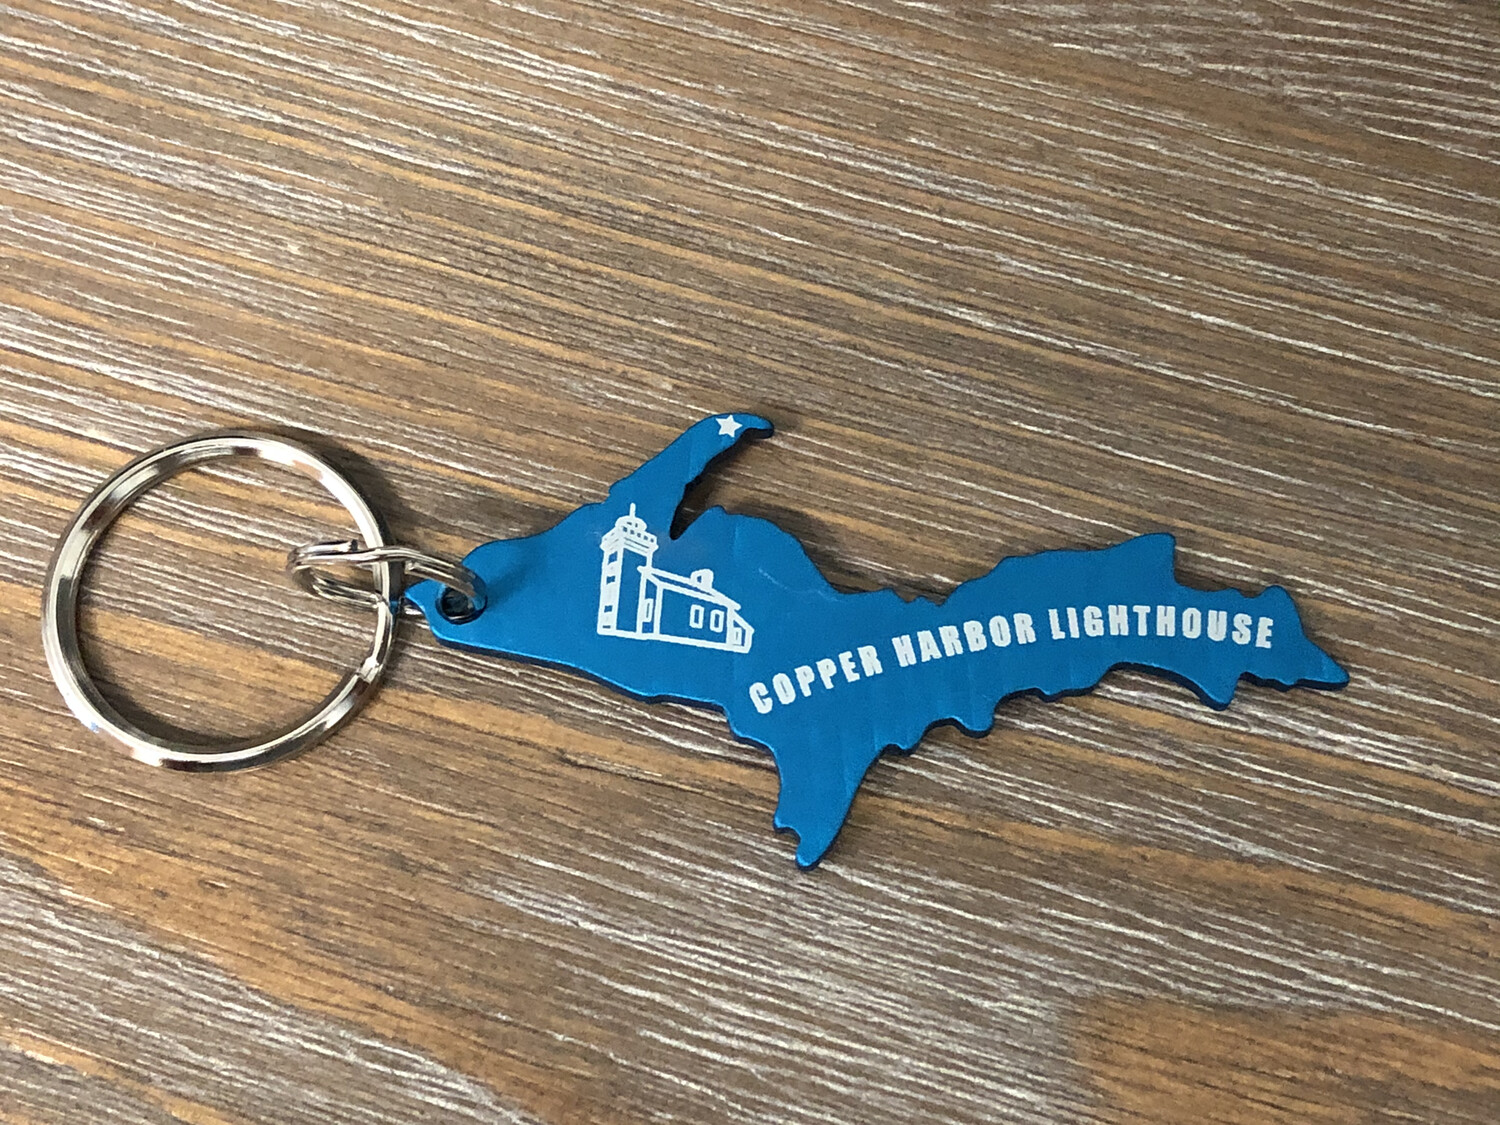 Copper Harbor Lighthouse Keychain